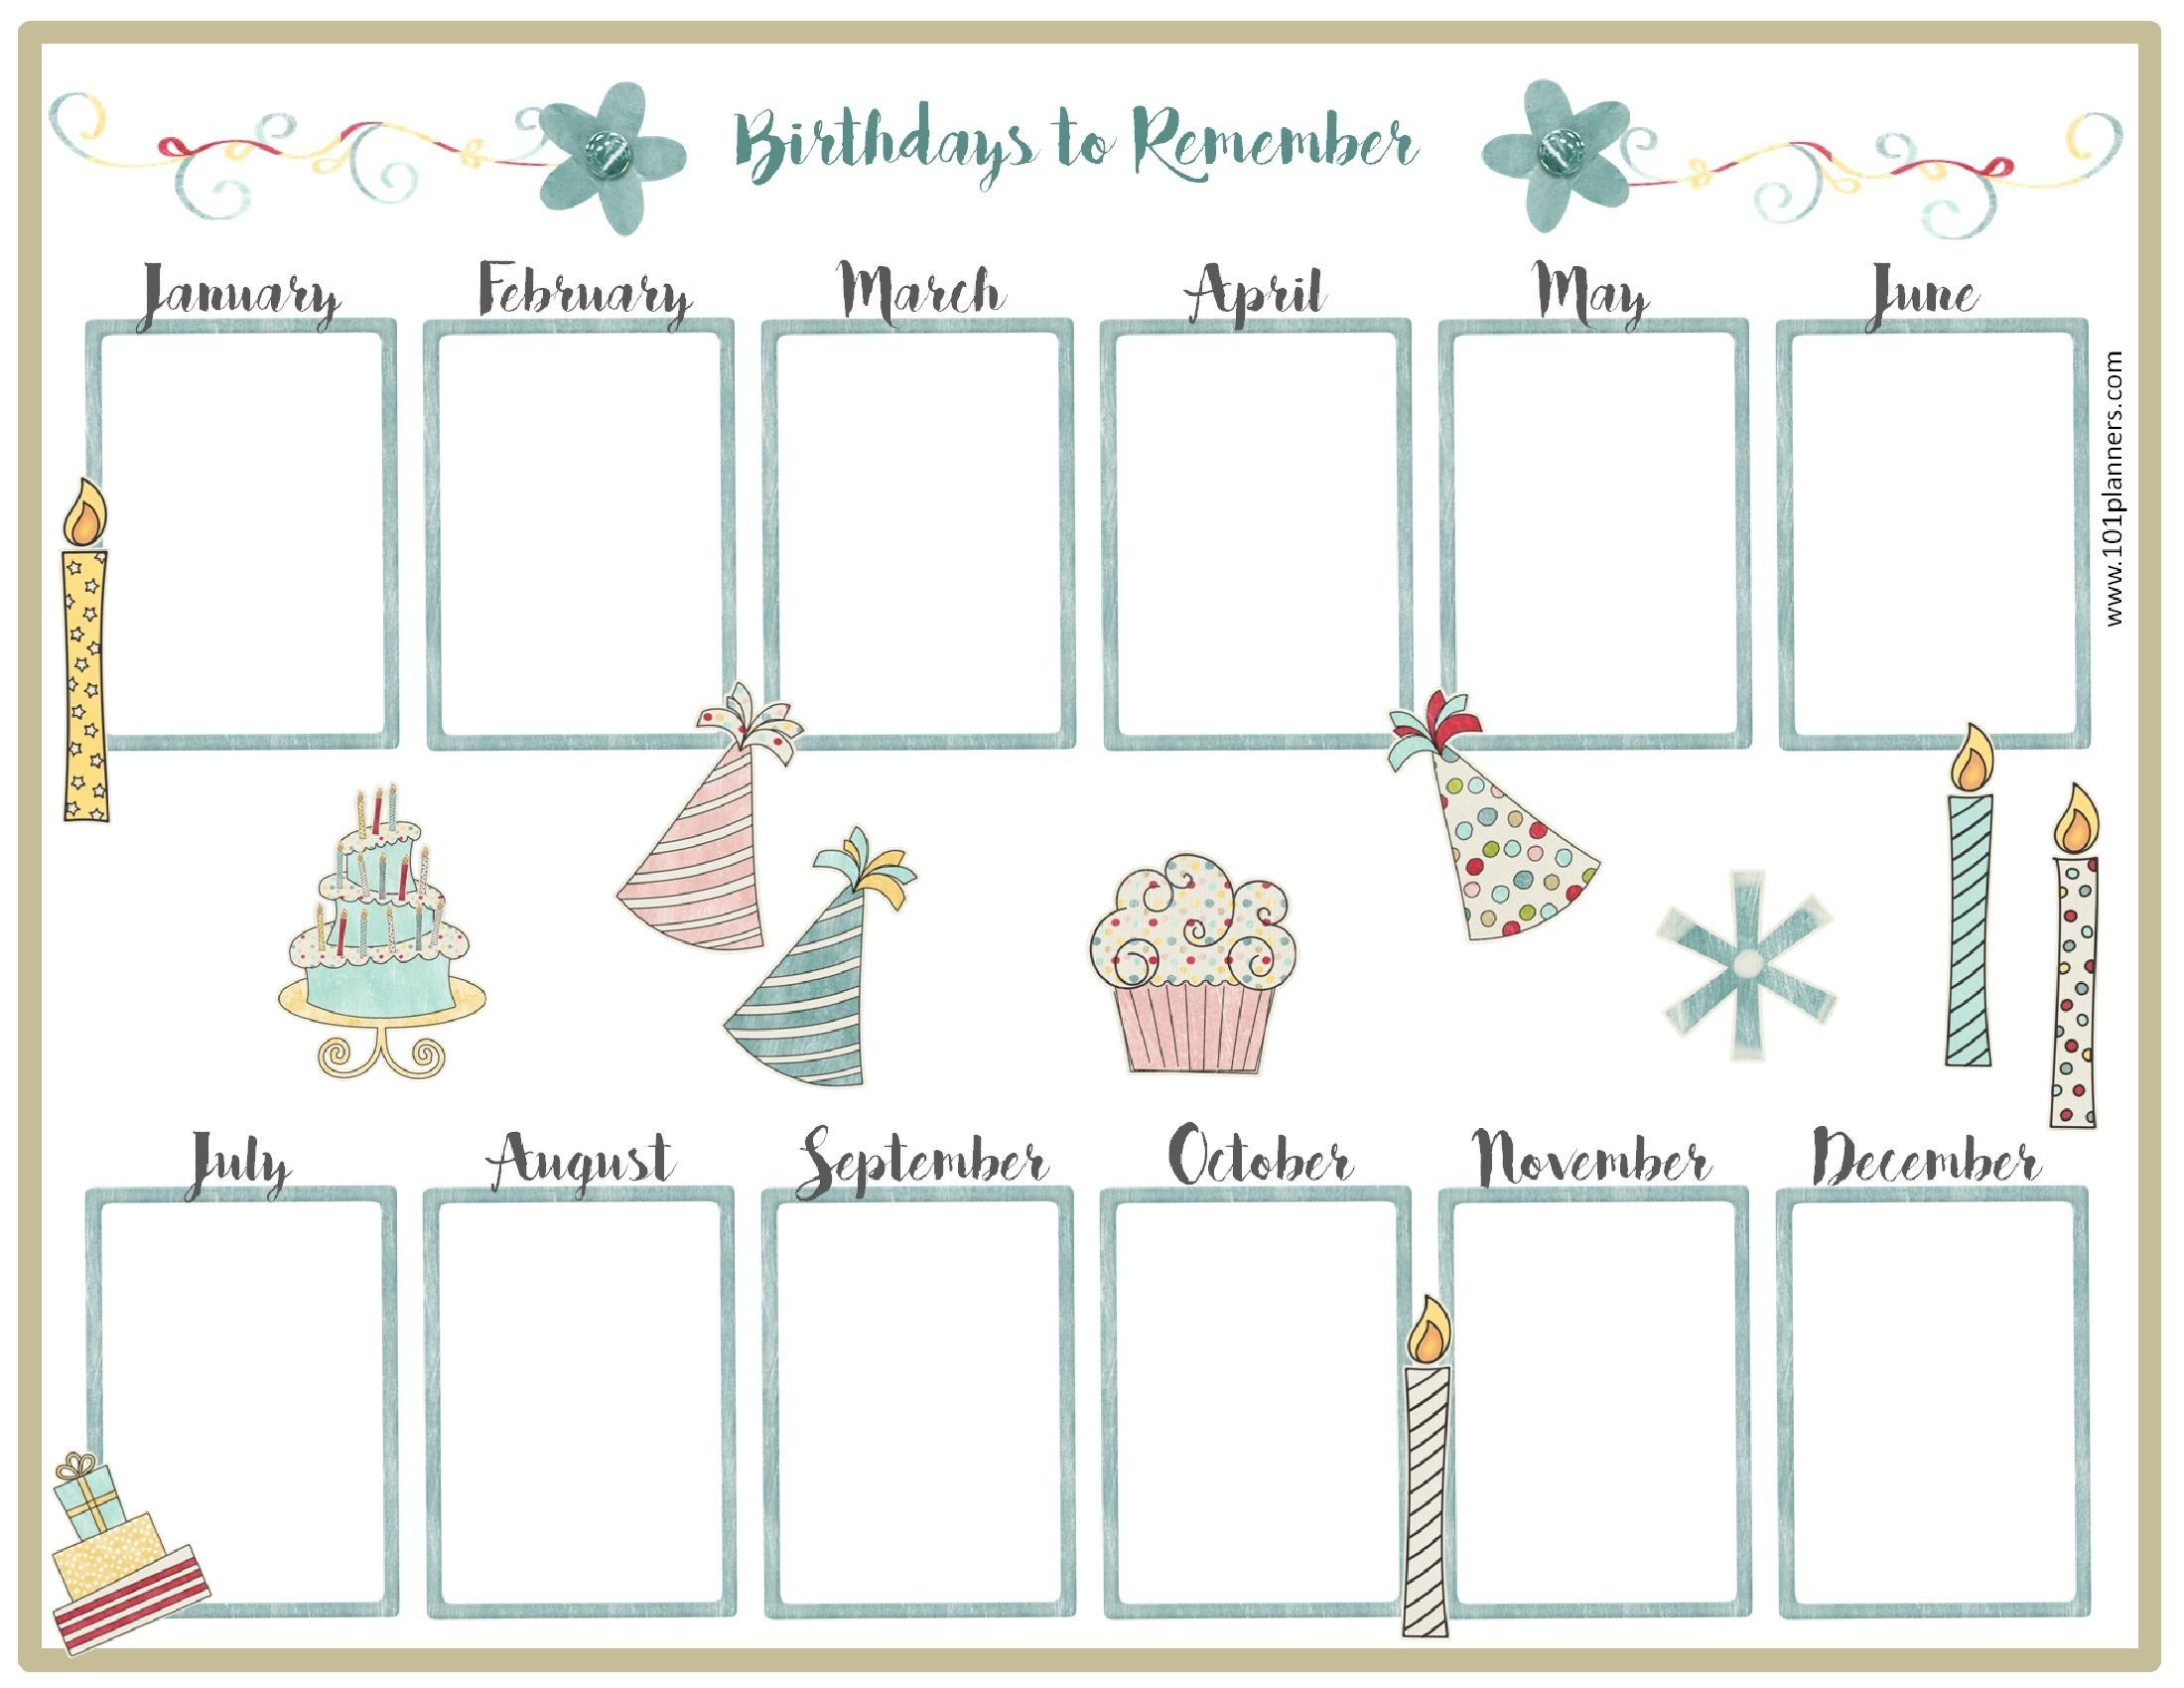 Birthday Calendar Template (С Изображениями) | День Рождения Birthday Calendar Fill In Online